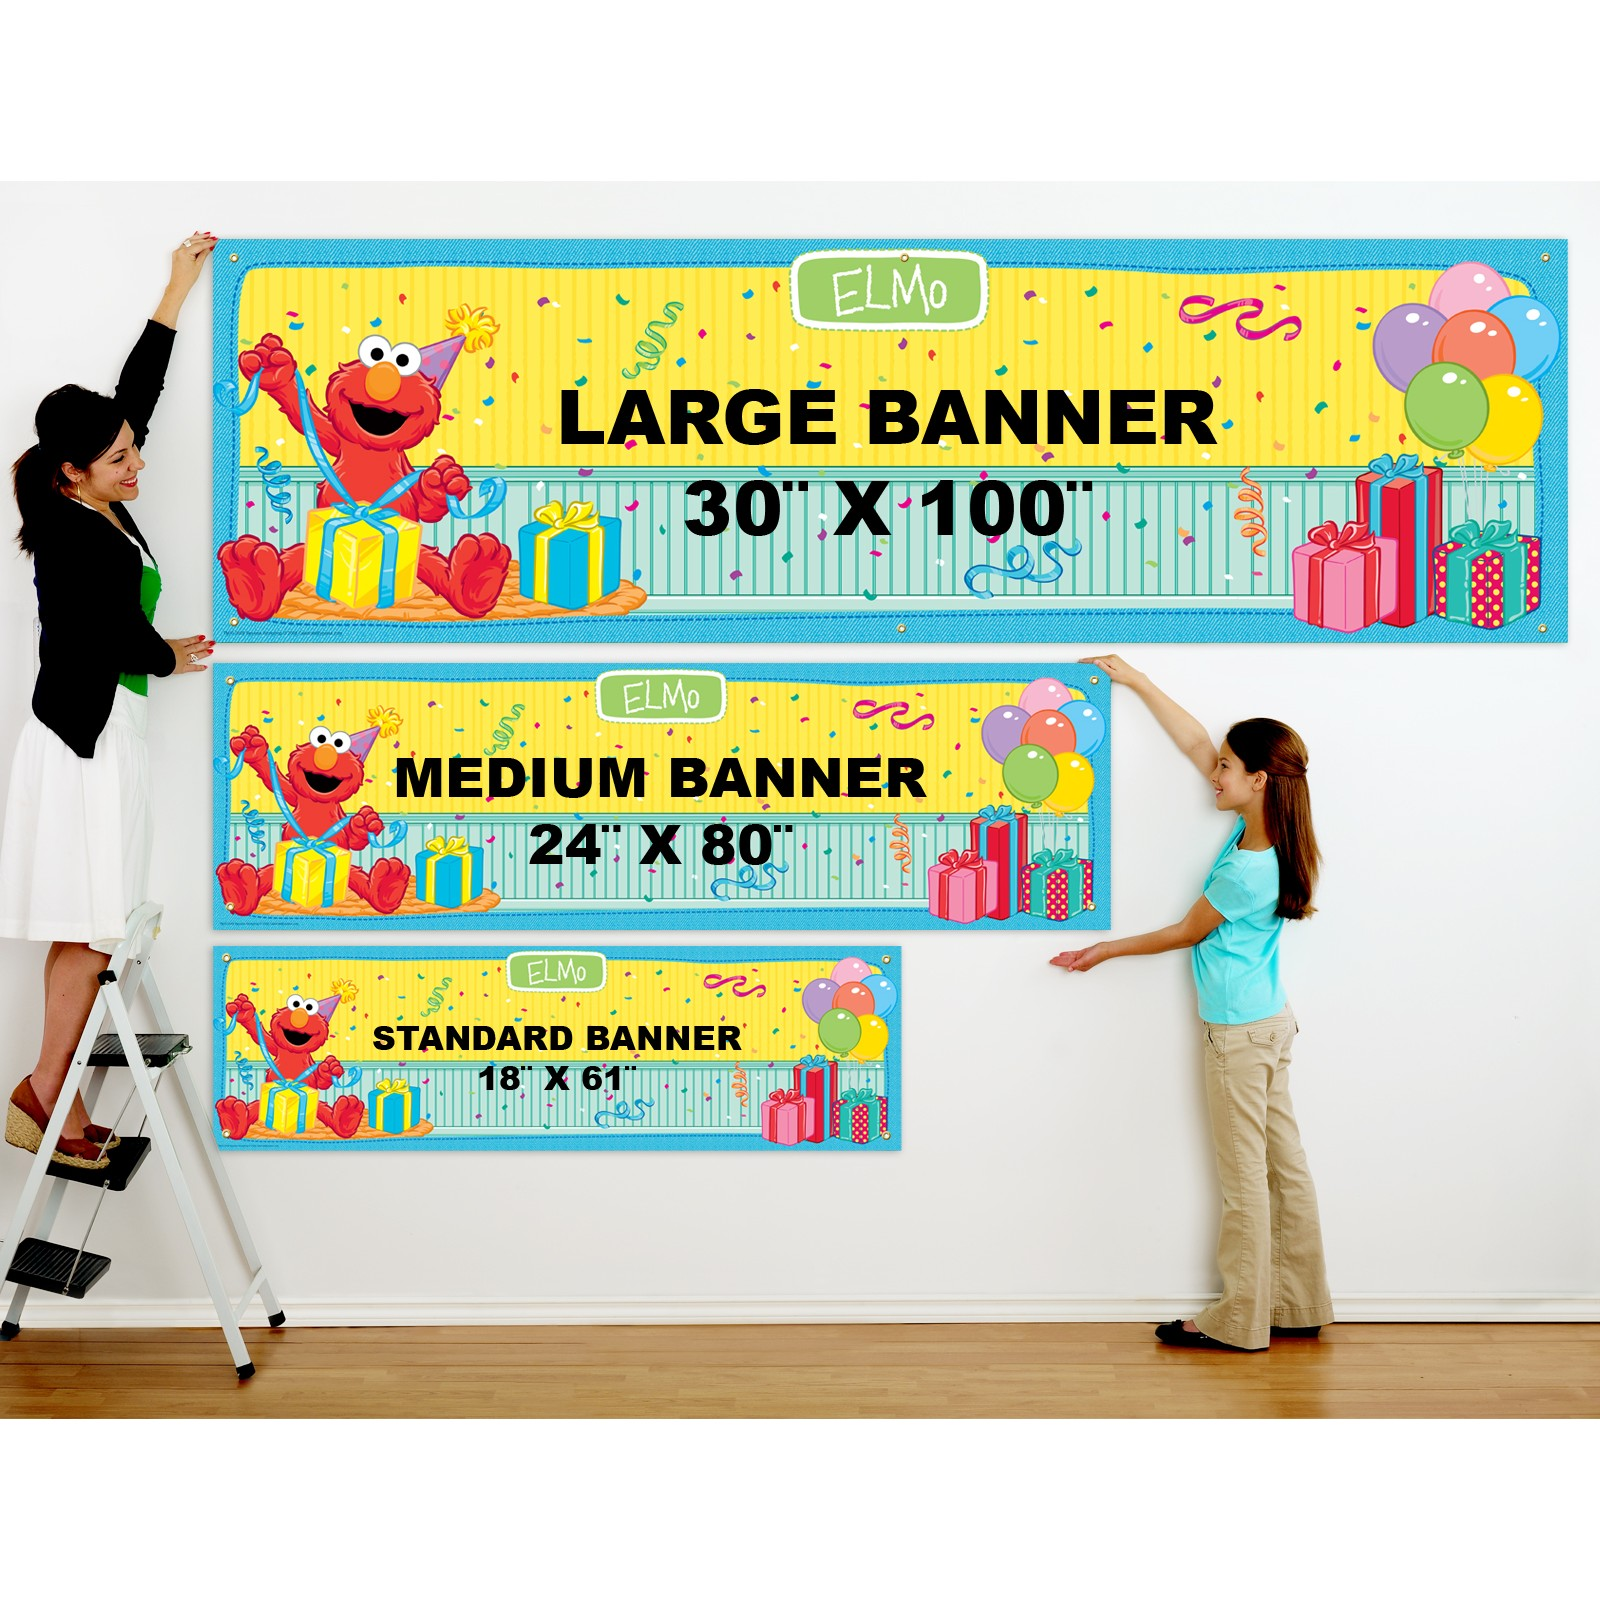 personalized birthday signs banners ; 70e2c721bf08f7046a4171c1142aabf0